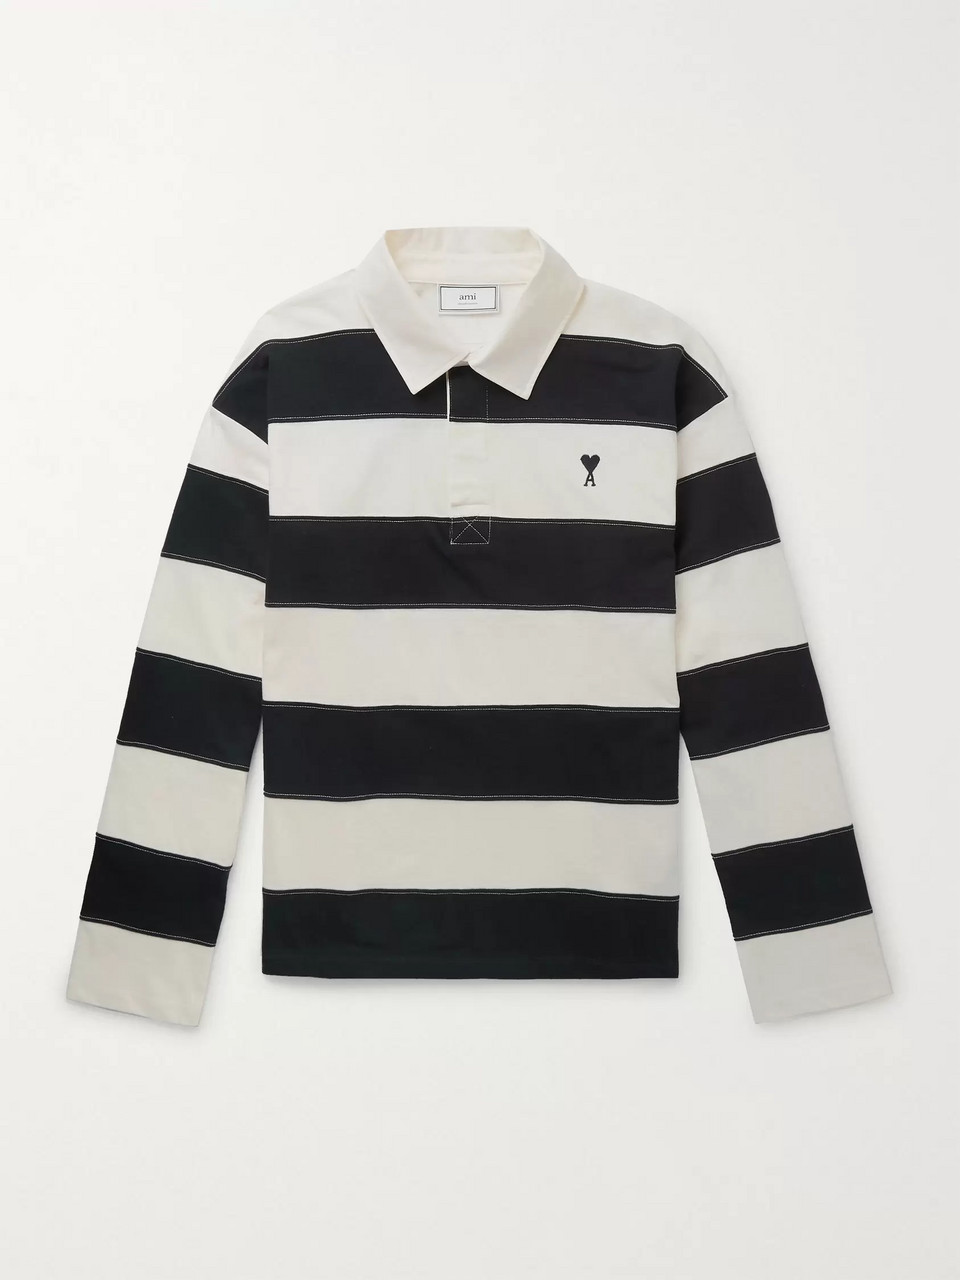 AMI Logo-Embroidered Striped Cotton-Jersey Rugby Shirt